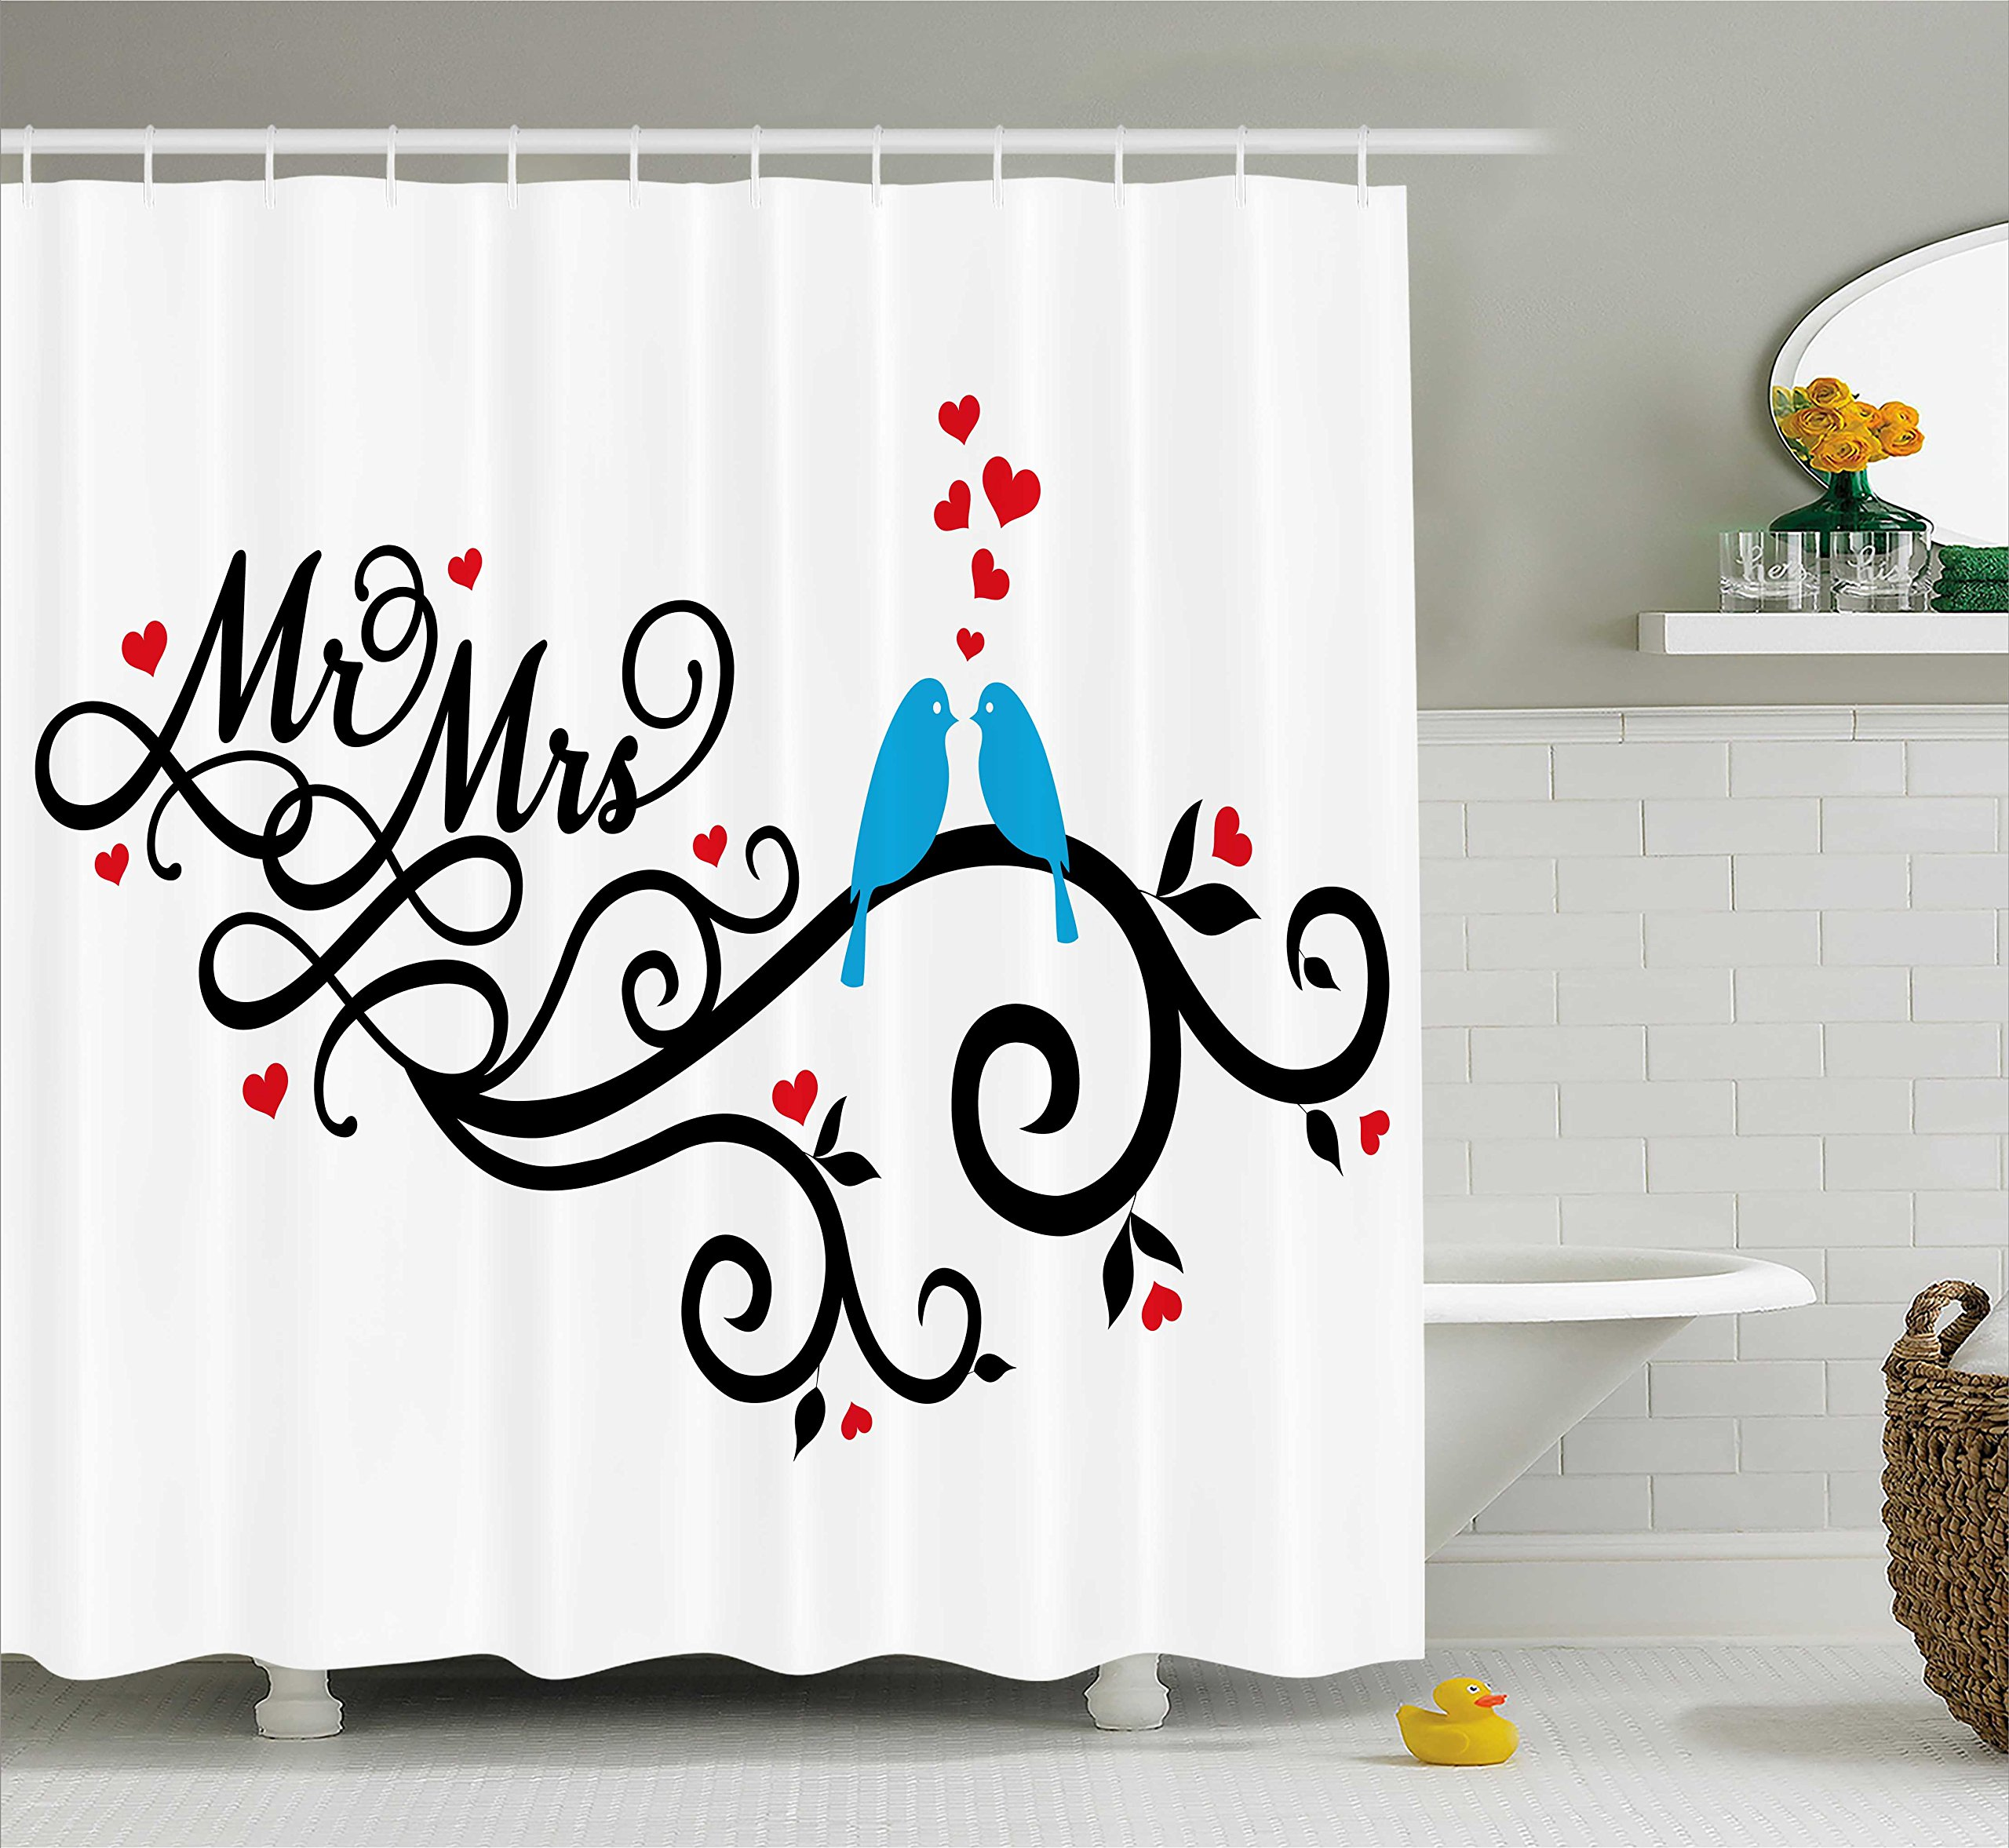 Ambesonne Wedding Decorations Shower Curtain, Mr. and Mrs. Swirled Branches with Red Hearts and Two Birds Love Valentine's, Fabric Bathroom Decor Set with Hooks, 70 Inches, Red Blue Black